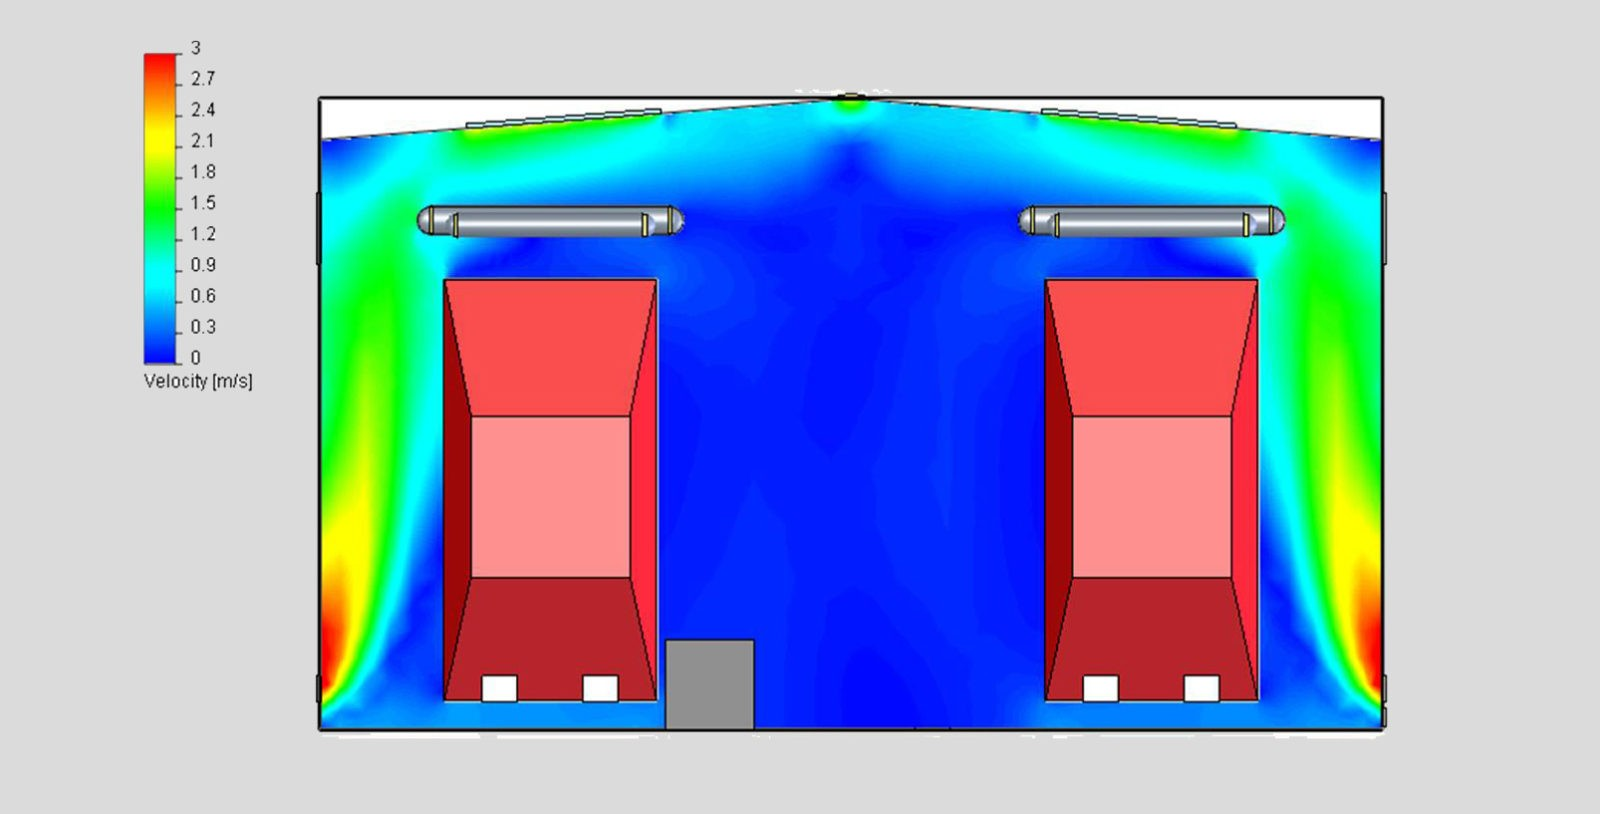 Heat_Recovery_Boiler_Plant_CFD_Energy_Spain_IDOM__4_